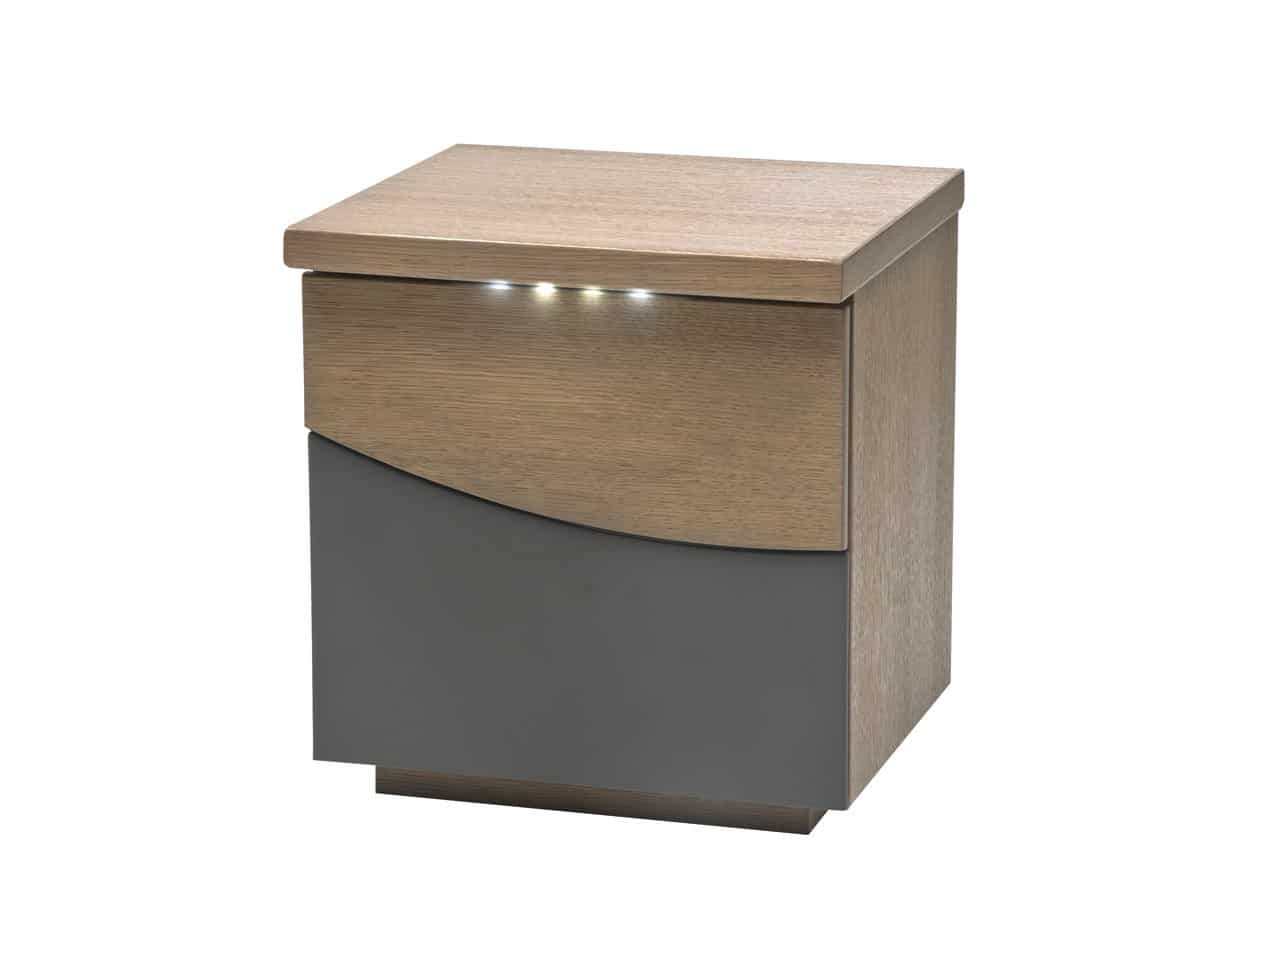 Table chevet Carbone tiroirs Bahia Meubles 2 Laque Minet de j3L5qAR4